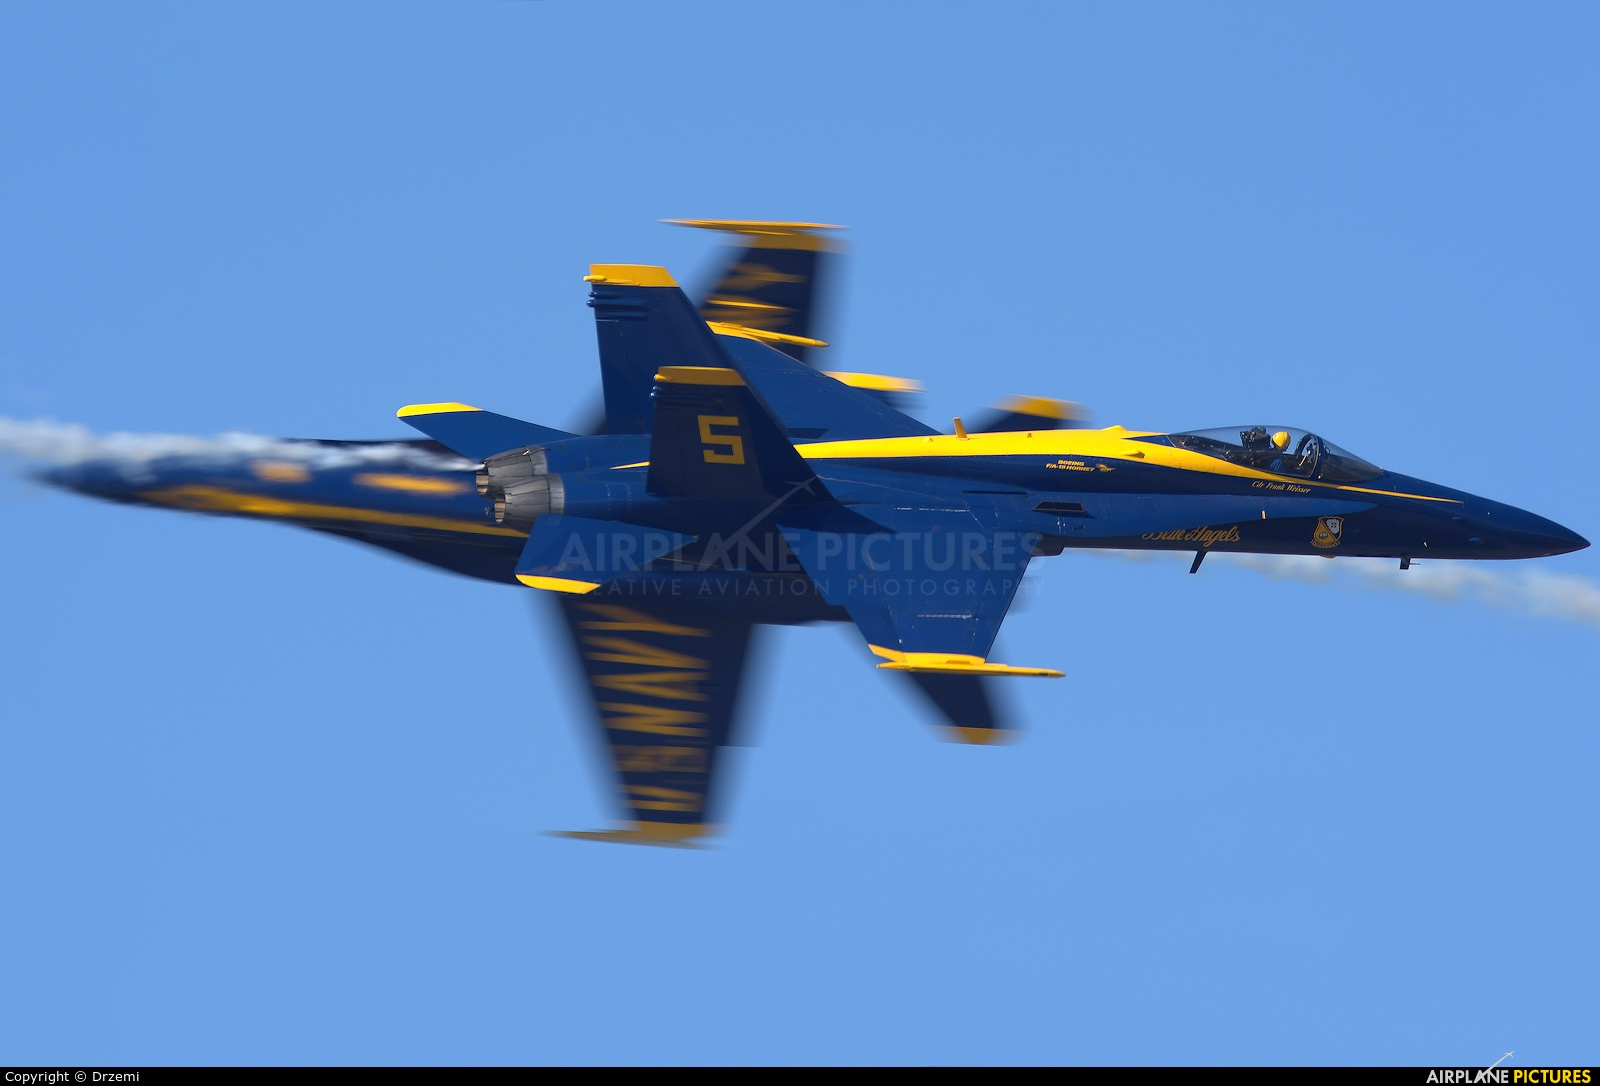 USA - Navy : Blue Angels 163462 aircraft at Pensacola - NAS / Forrest Sherman Field